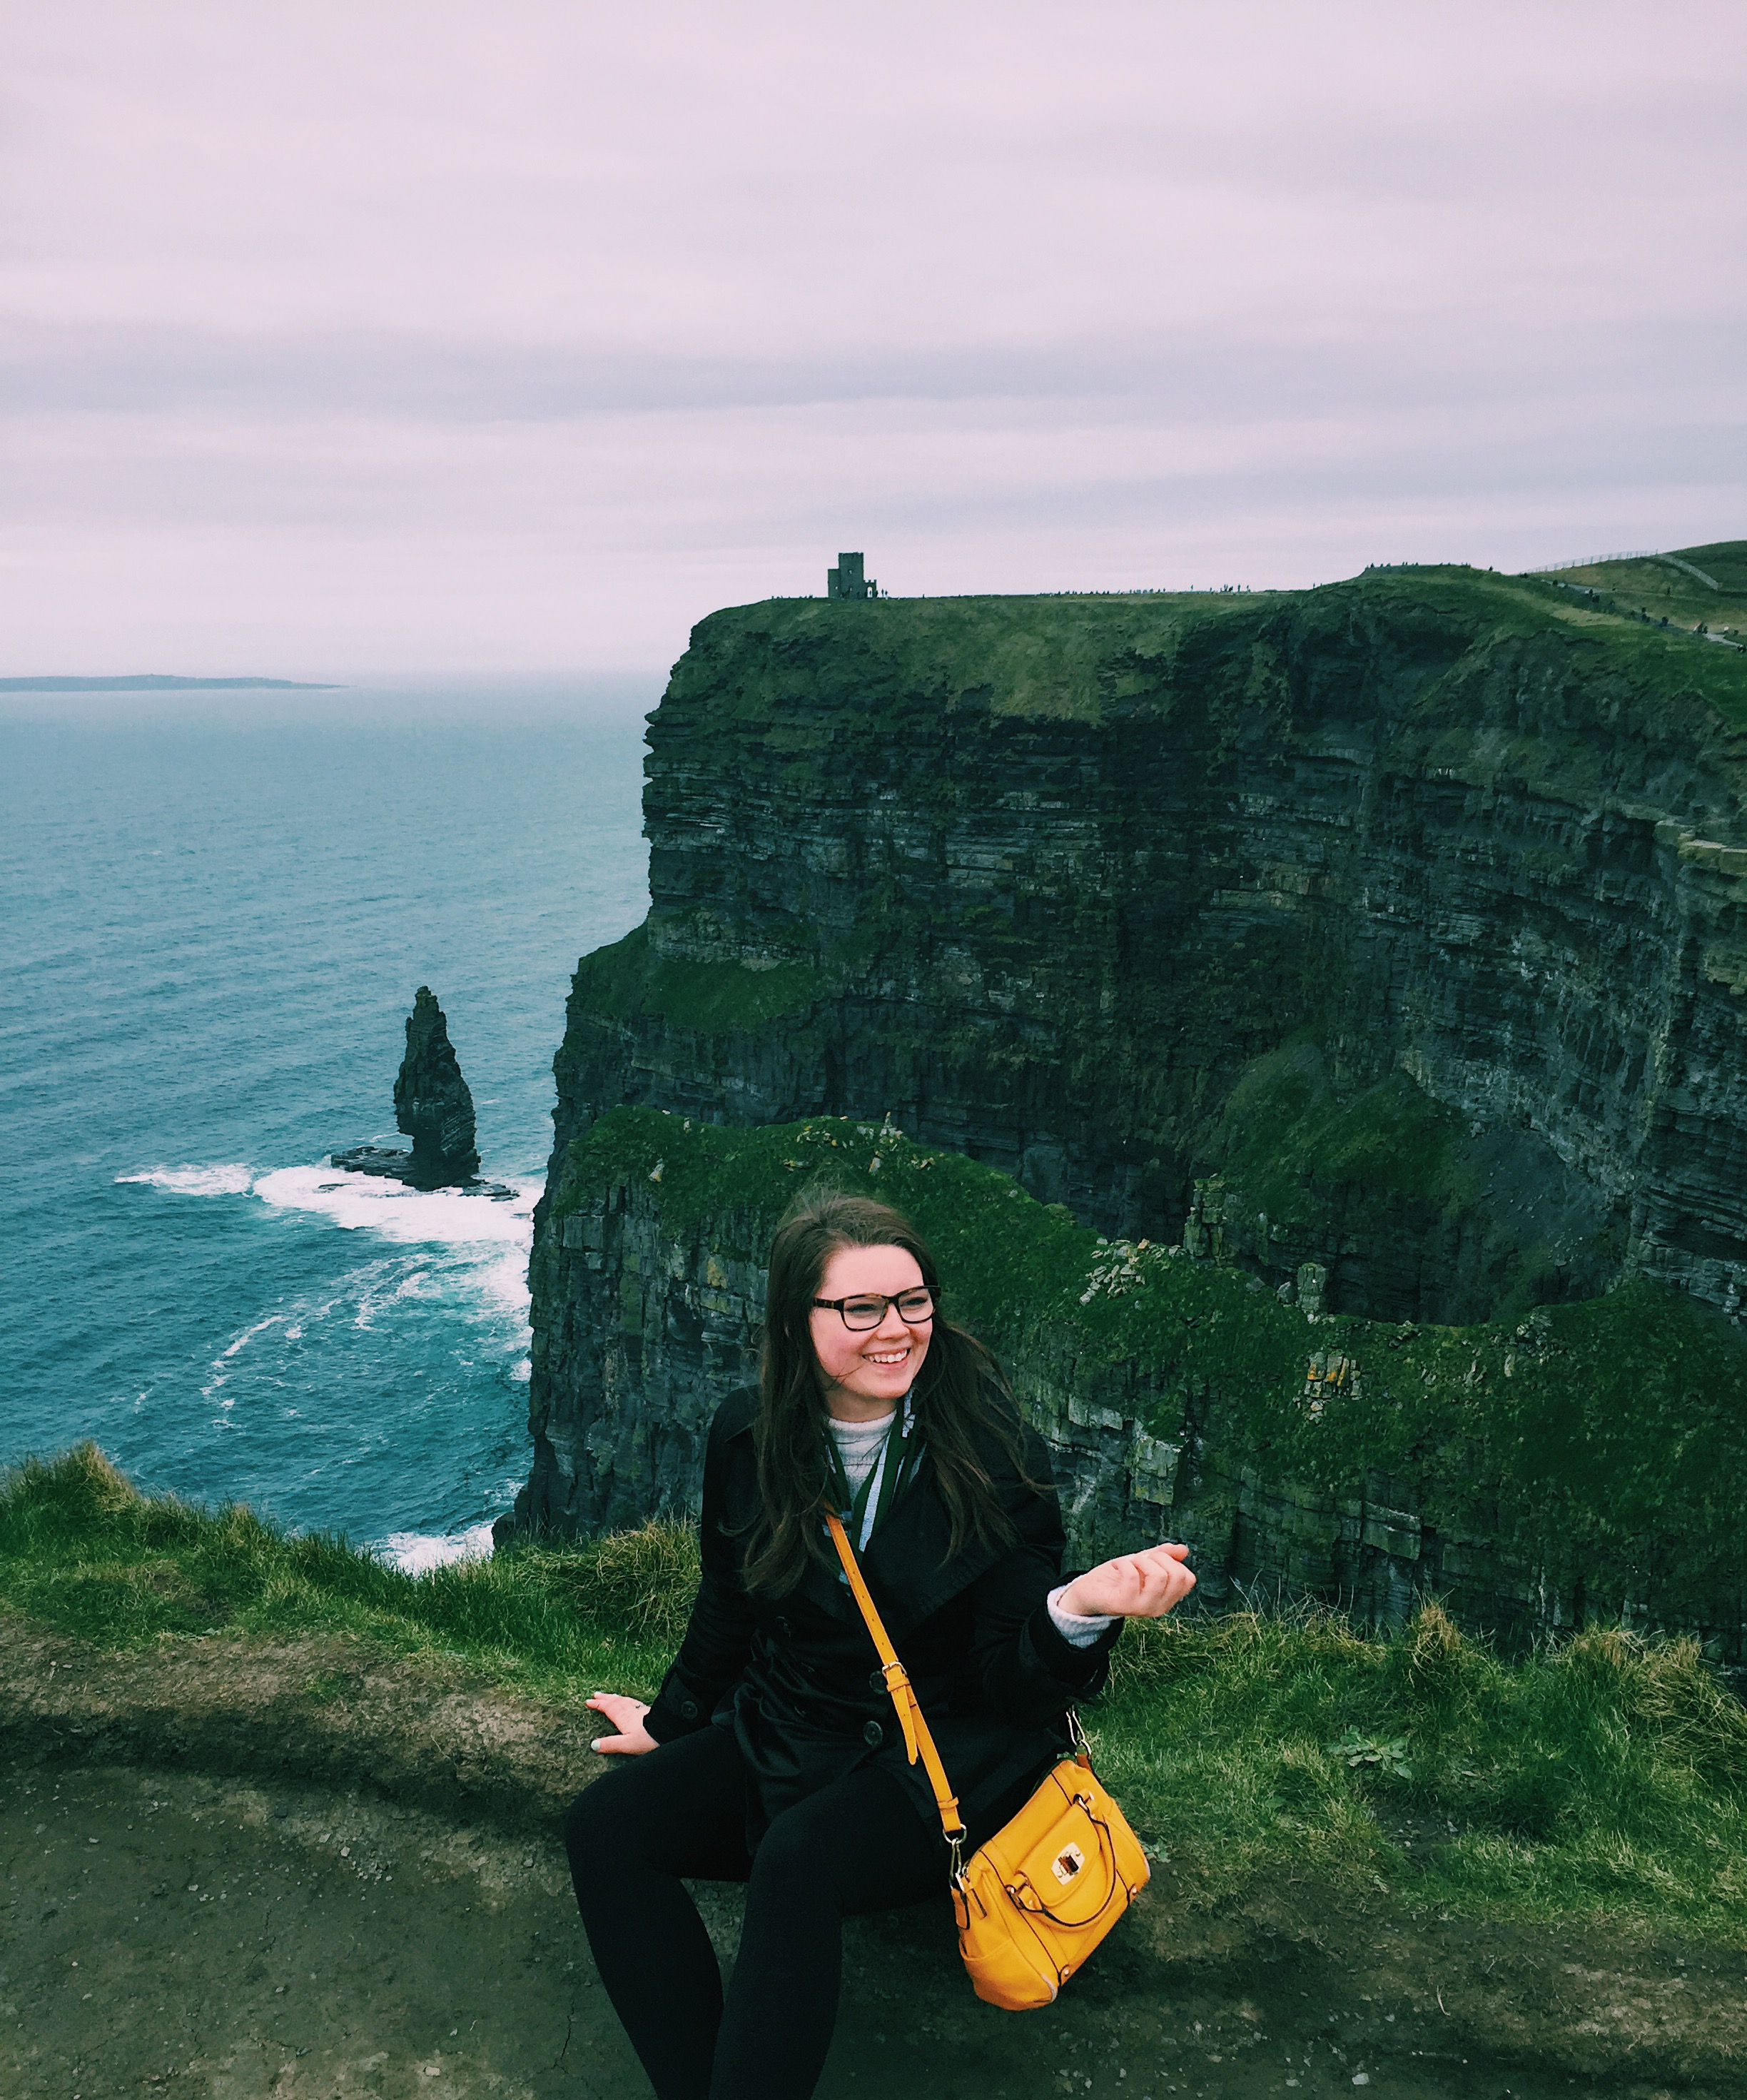 Me on the Cliffs of Moher